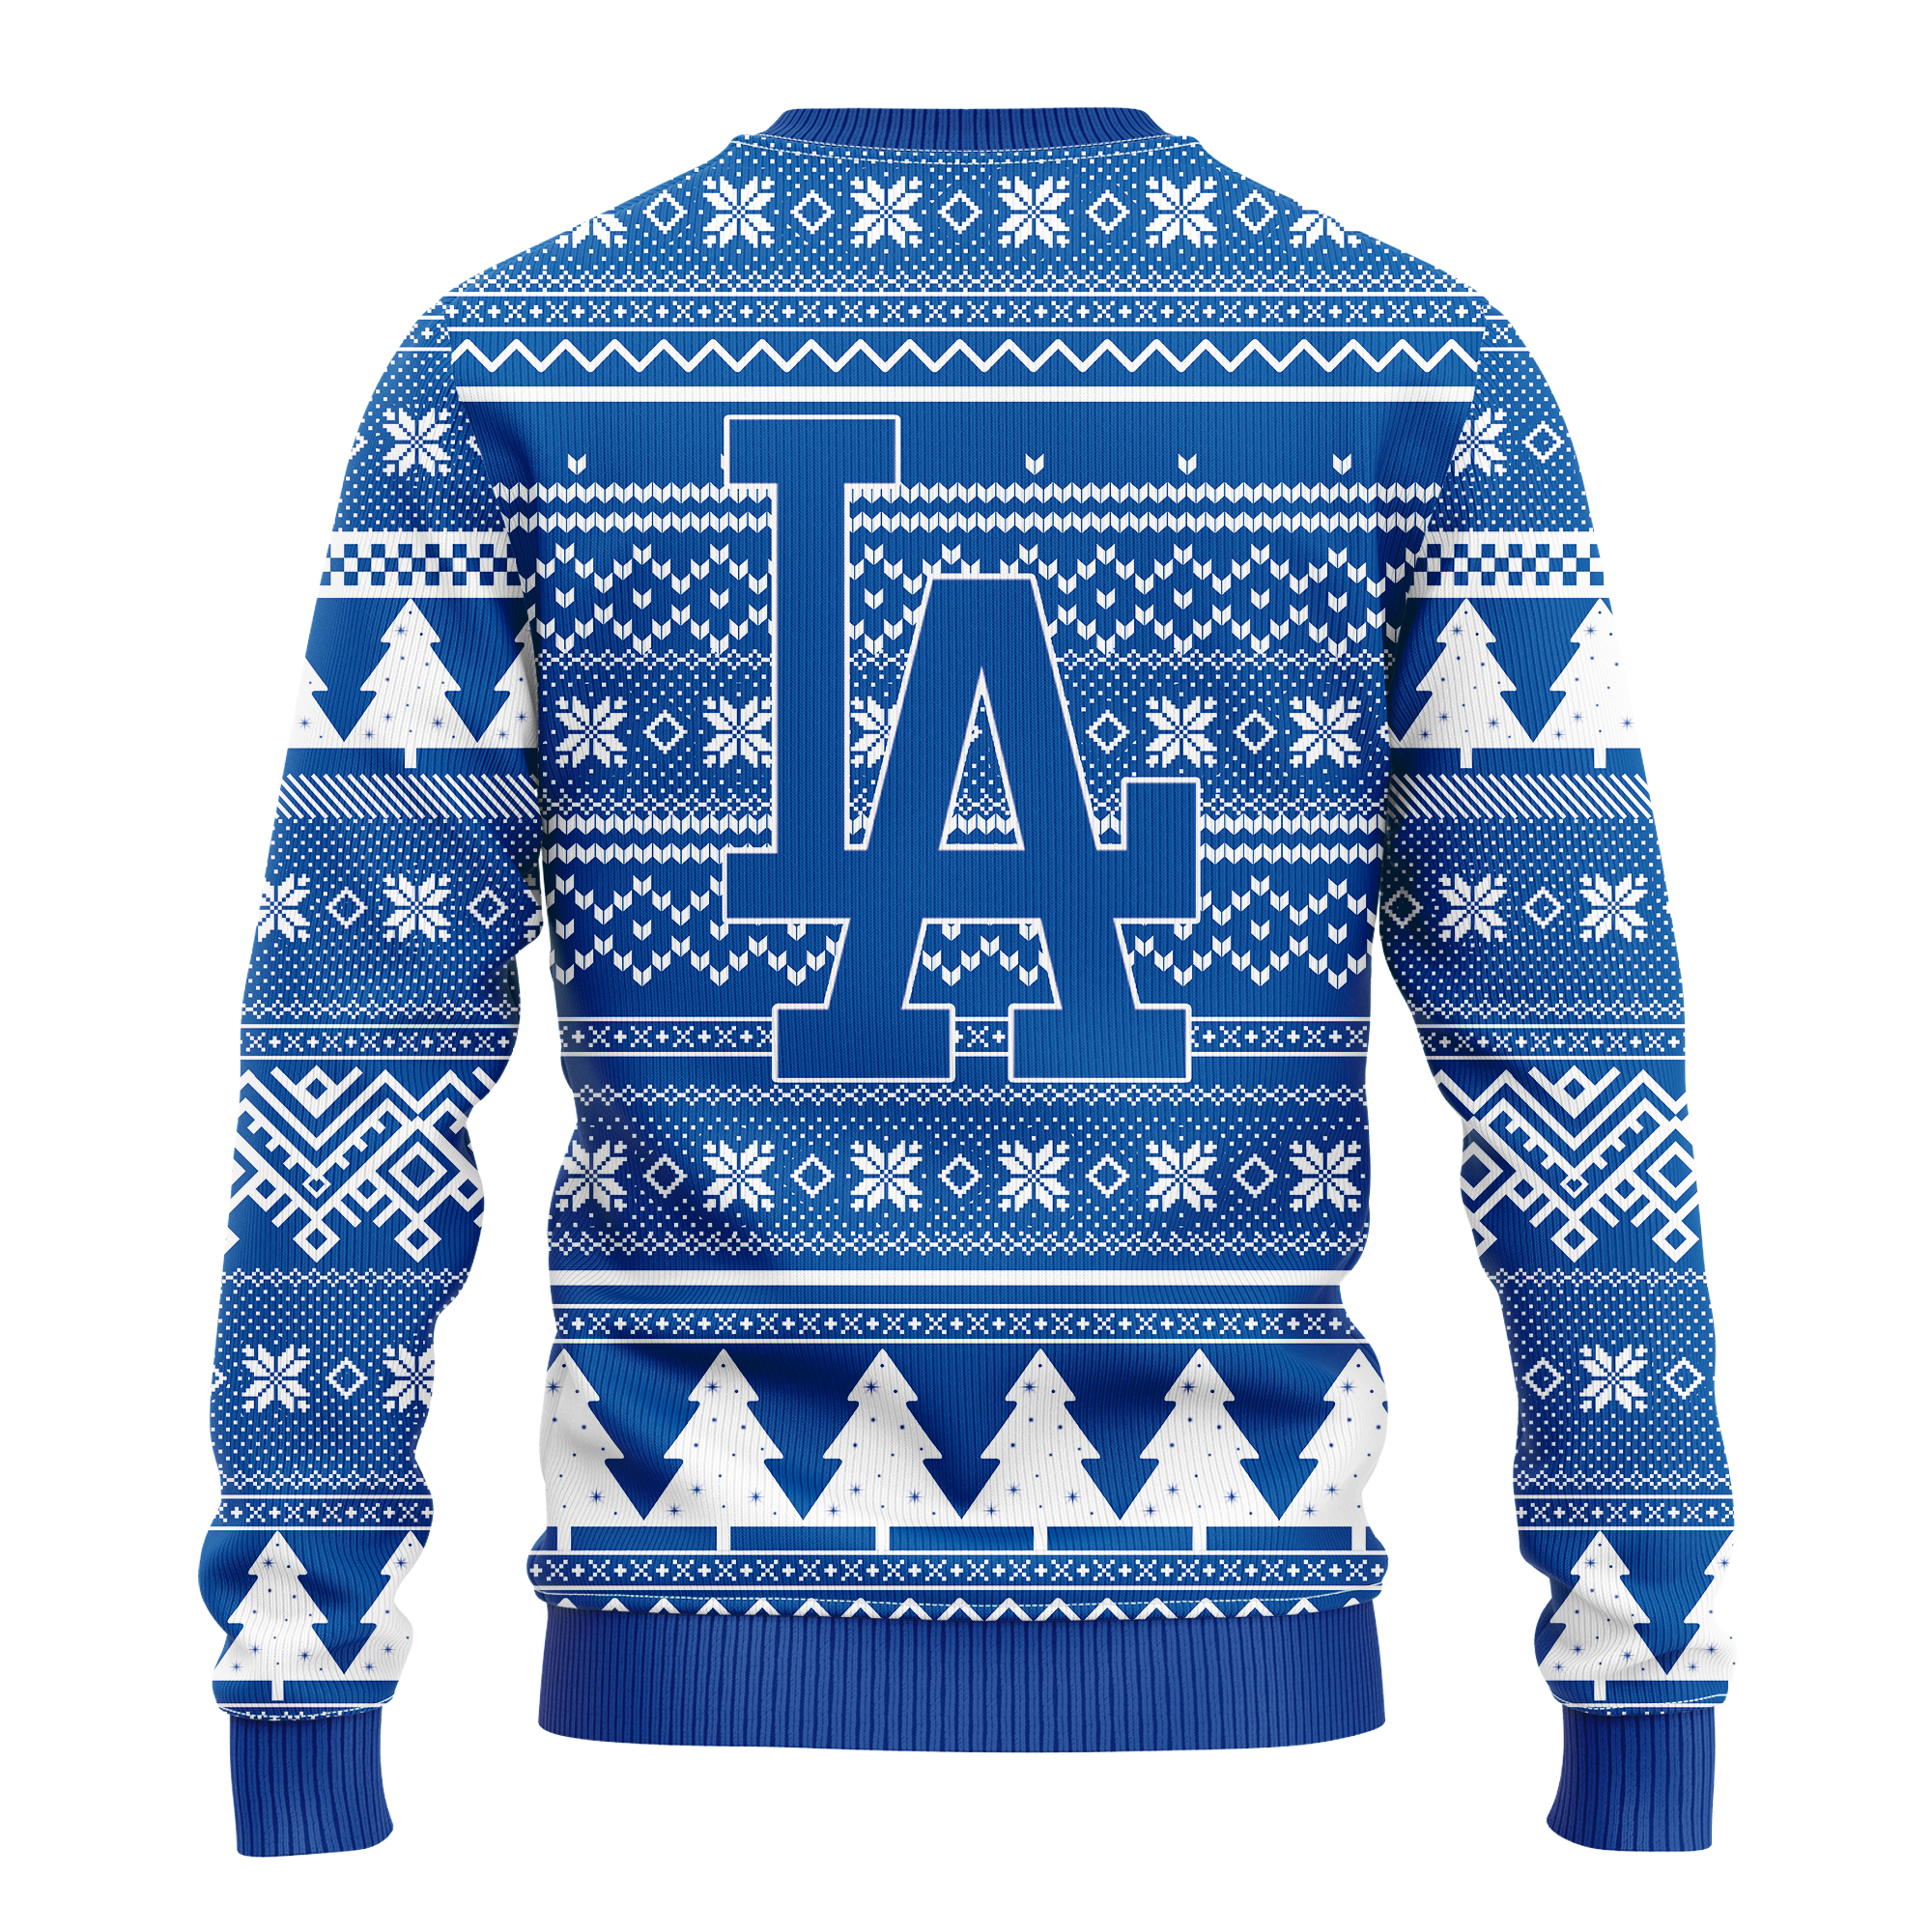 los angeles dodgers world champions ugly sweater 2